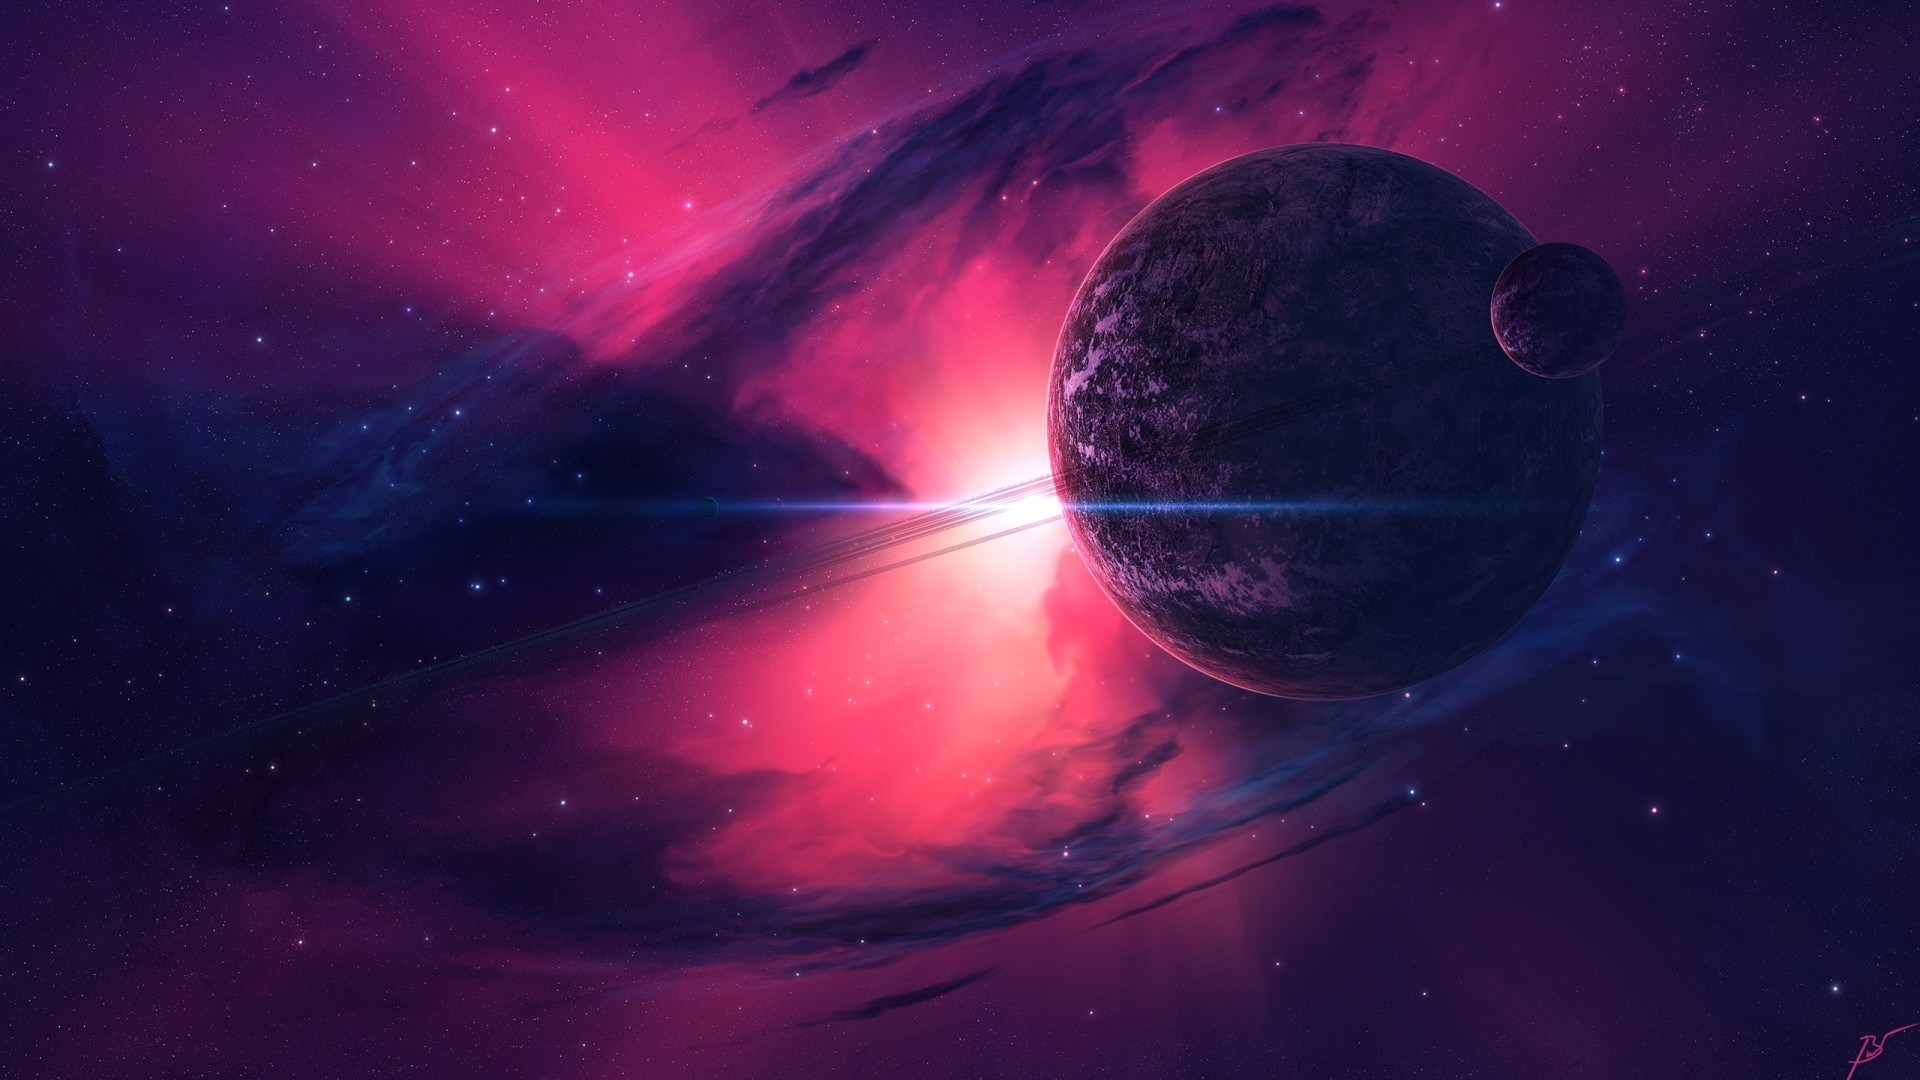 Download 1920x1080 Pink Galaxy, Planets, Galaxy Wallpapers